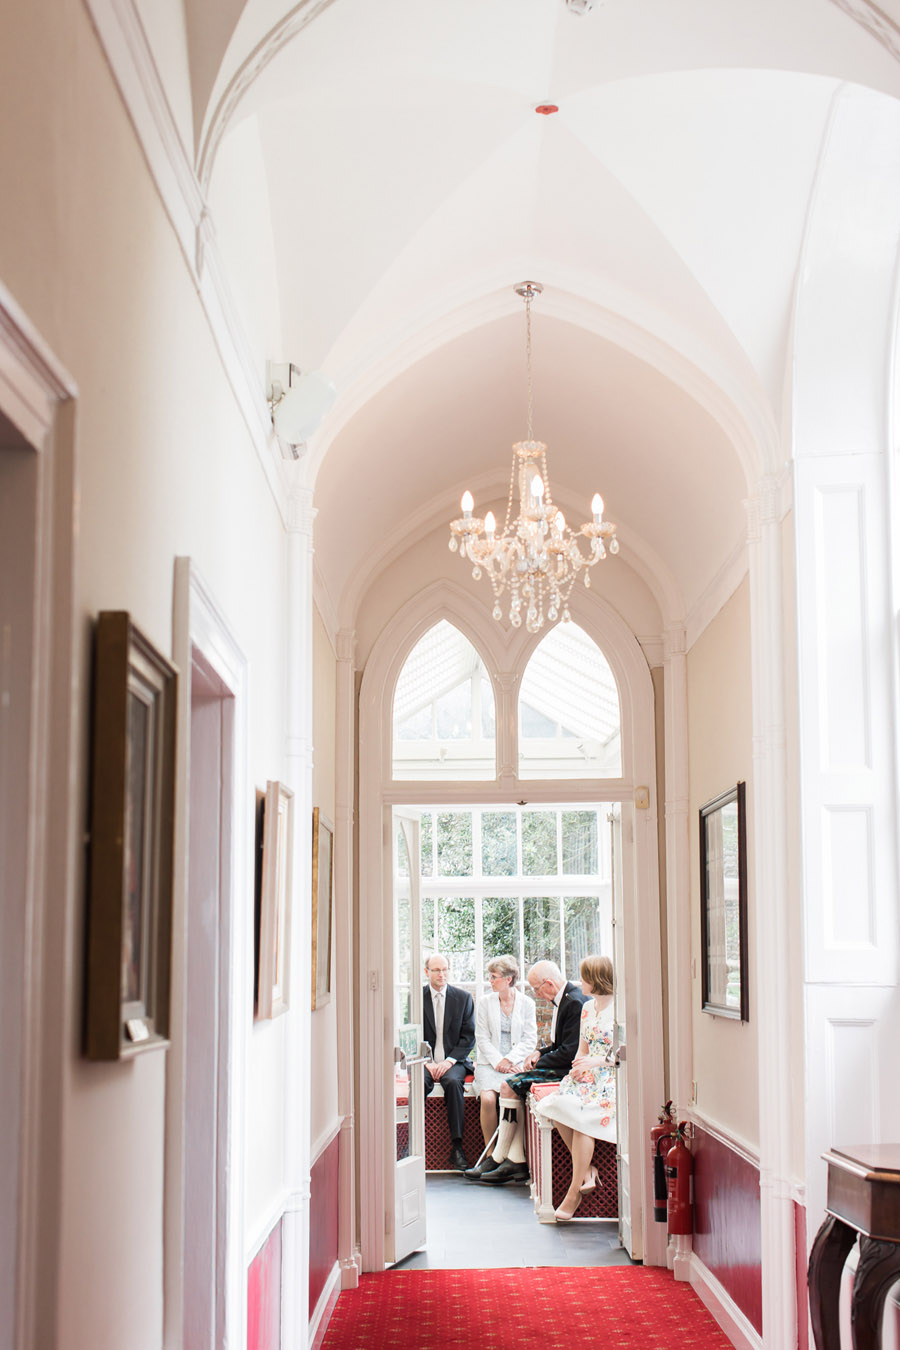 Hertford Castle intimate and alternative English wedding, photo credit Siobhan H Photography (3)